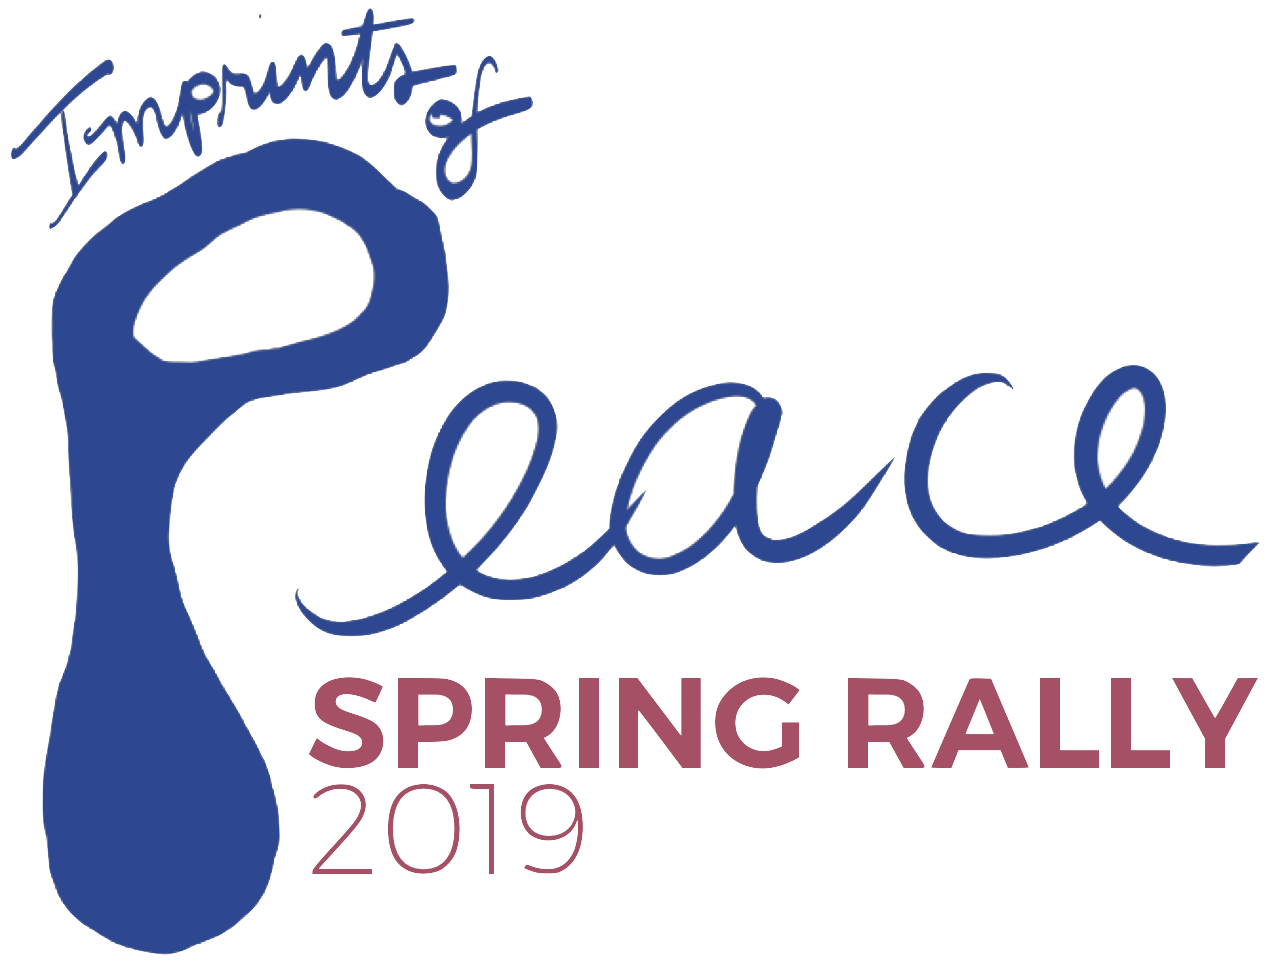 Spring Rally 2019 Logo-2.png